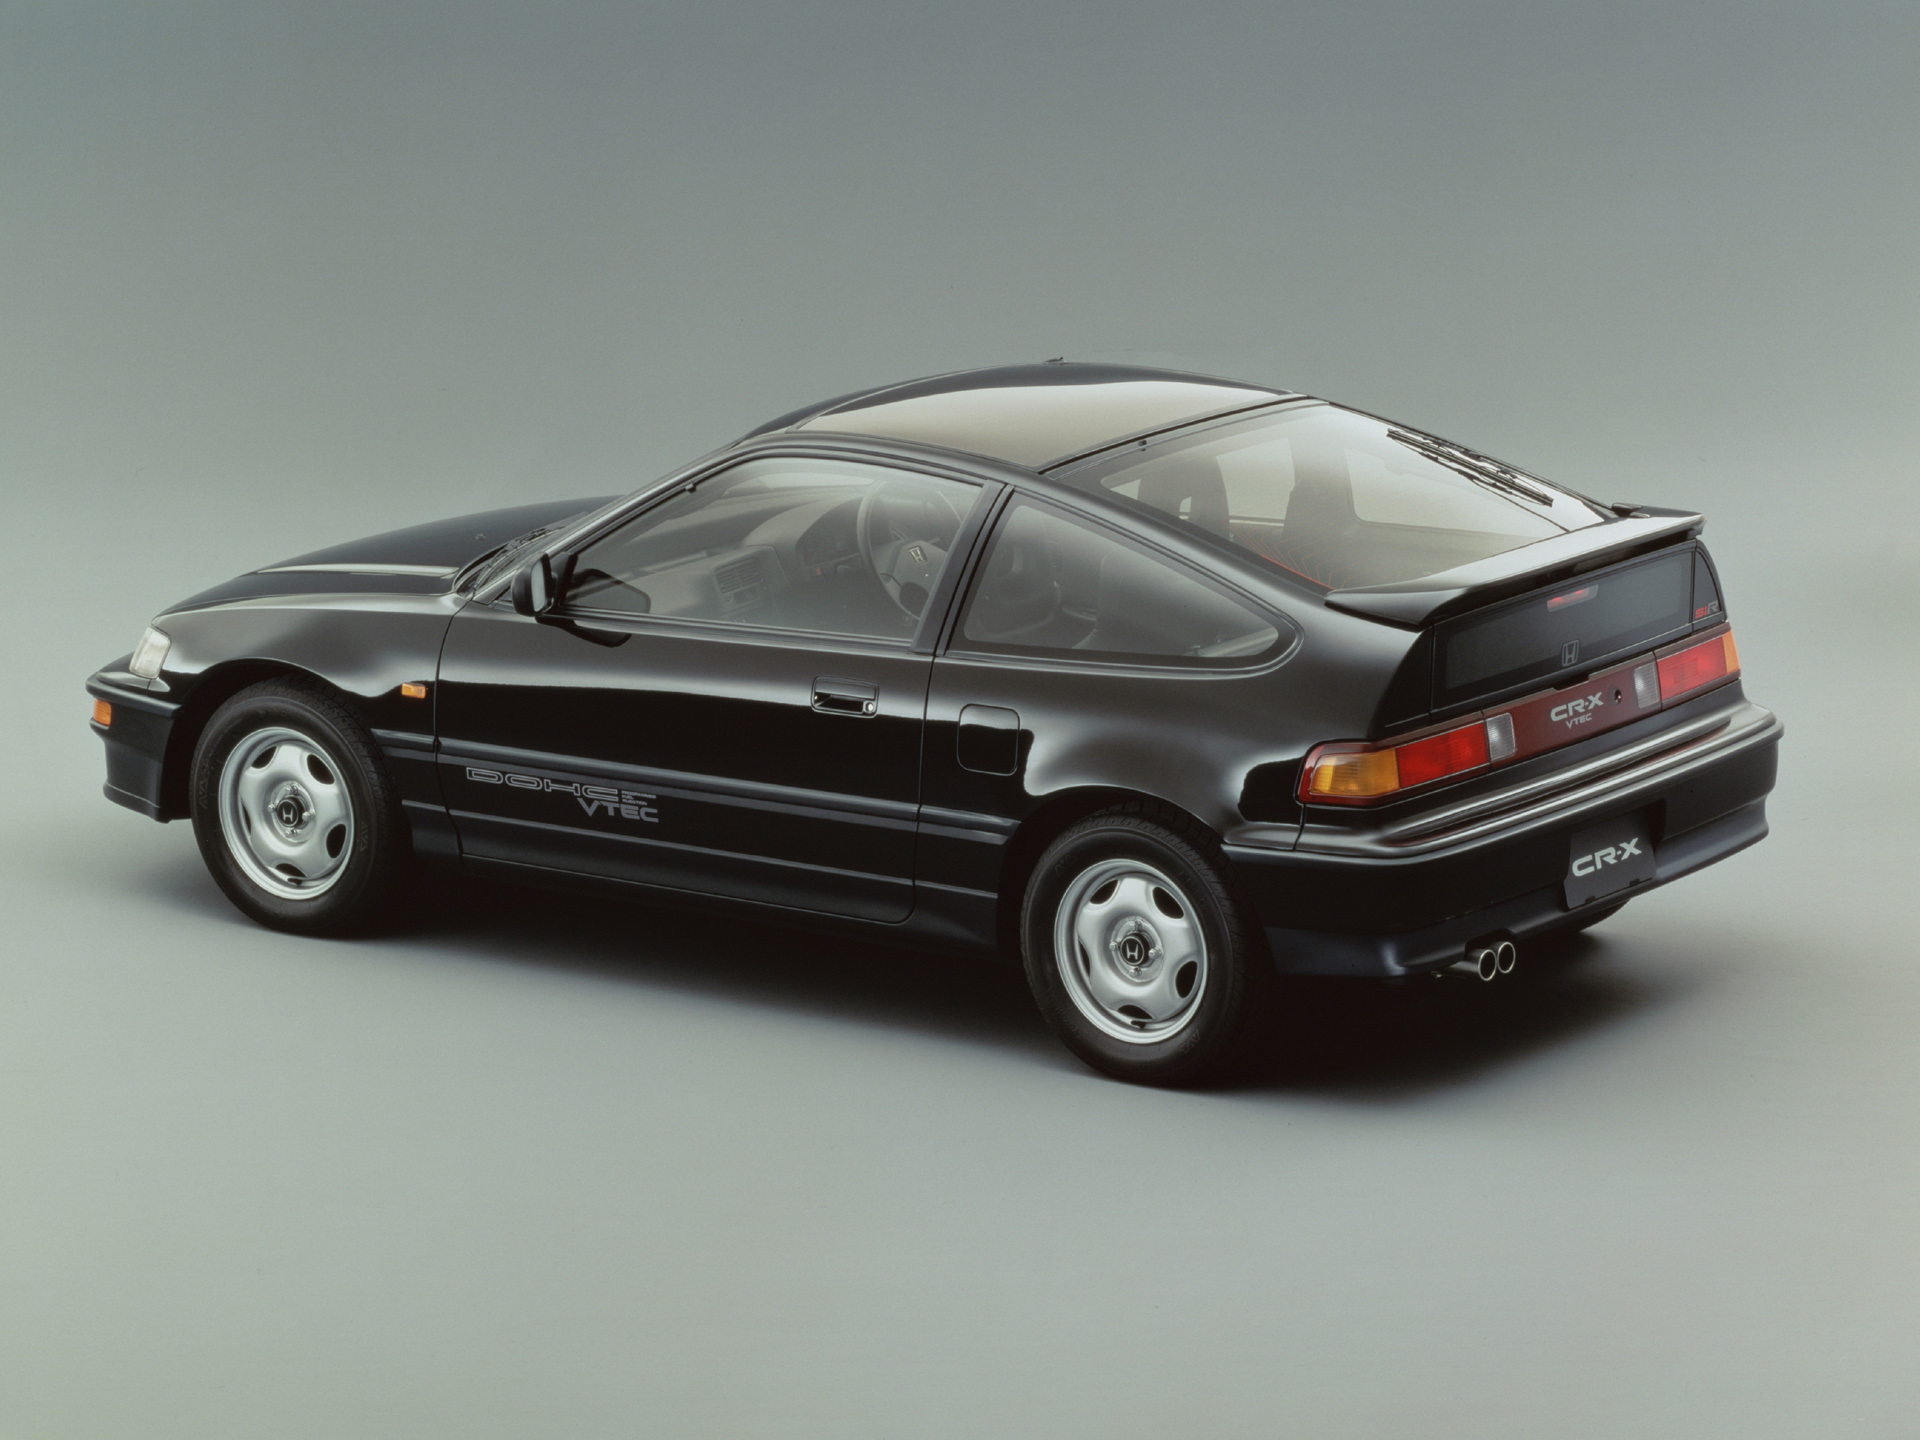 3DTuning of Honda CR-X SiR 3 Door Hatchback 1991 3DTuning